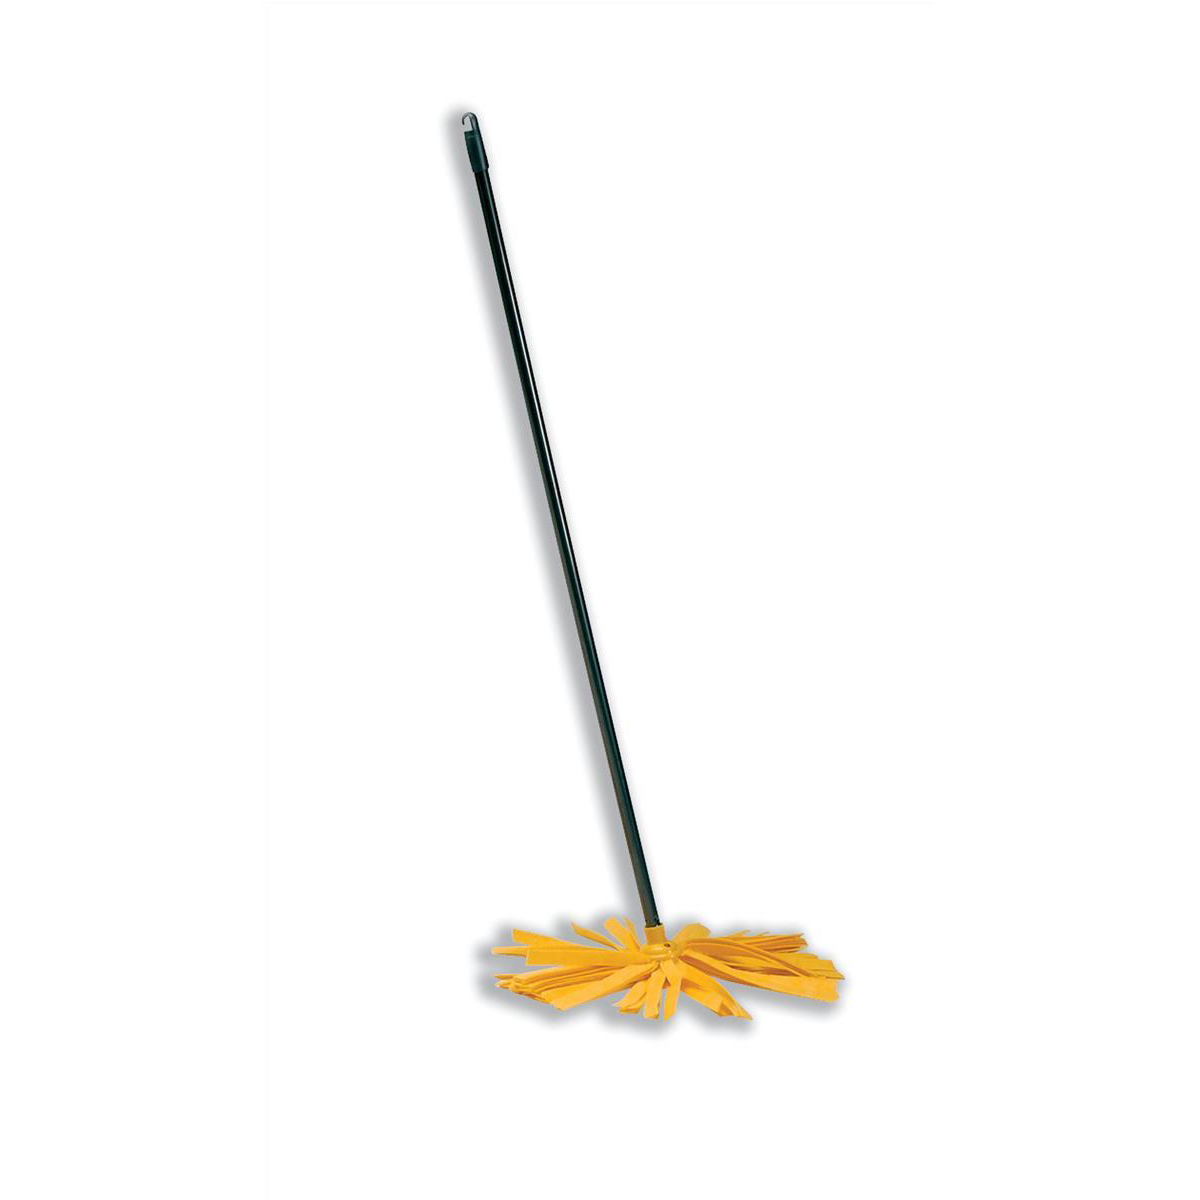 Mops & Buckets Addis Complete Cloth Mop Head & Handle With Yellow Socket and Thick Absorbent Strands Ref 510246